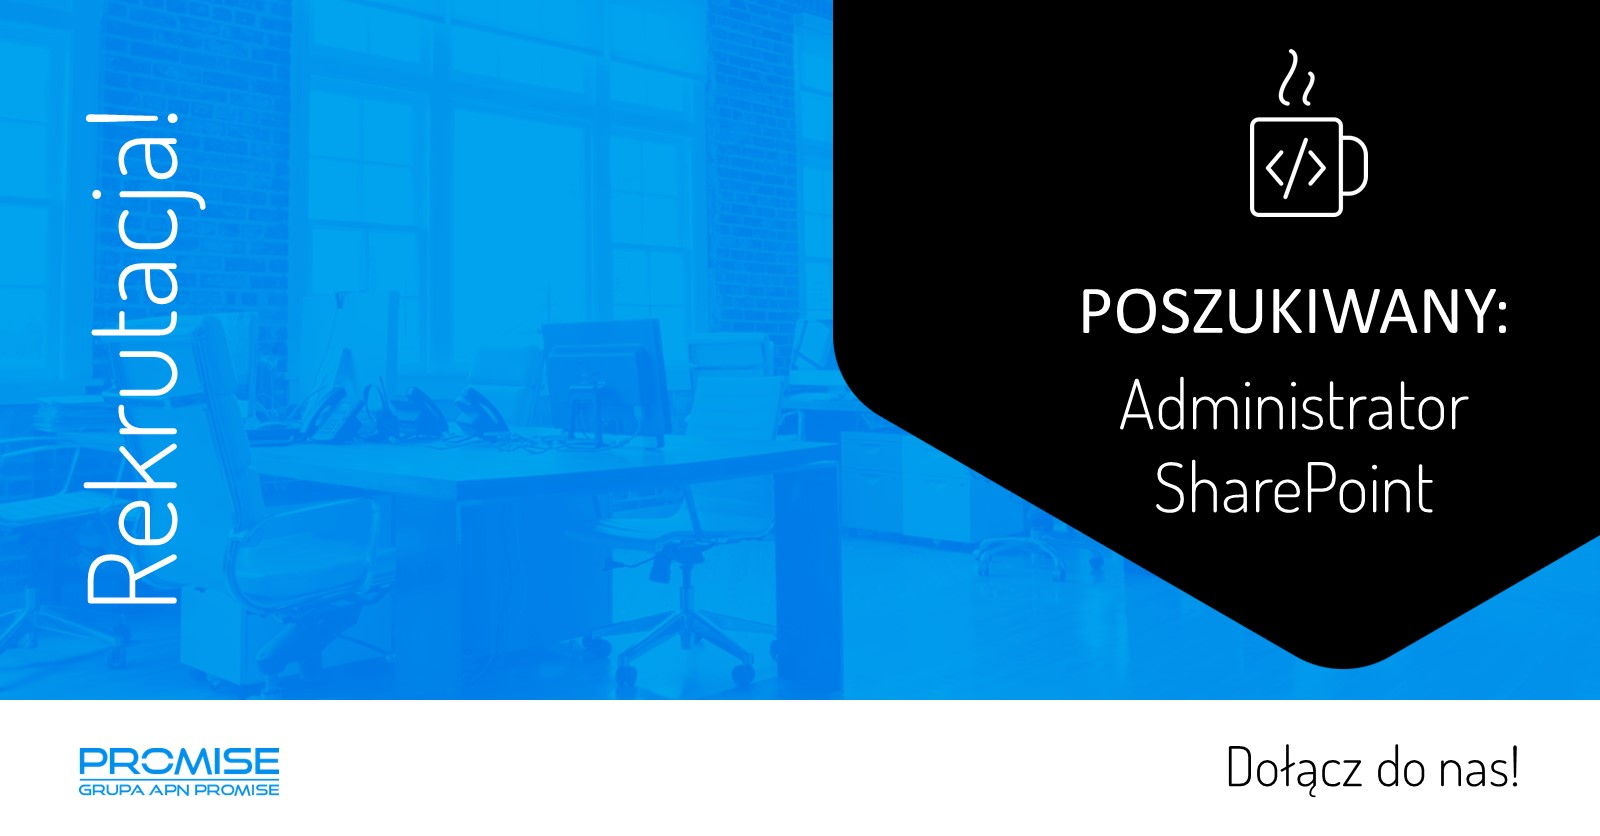 Administrator SharePoint